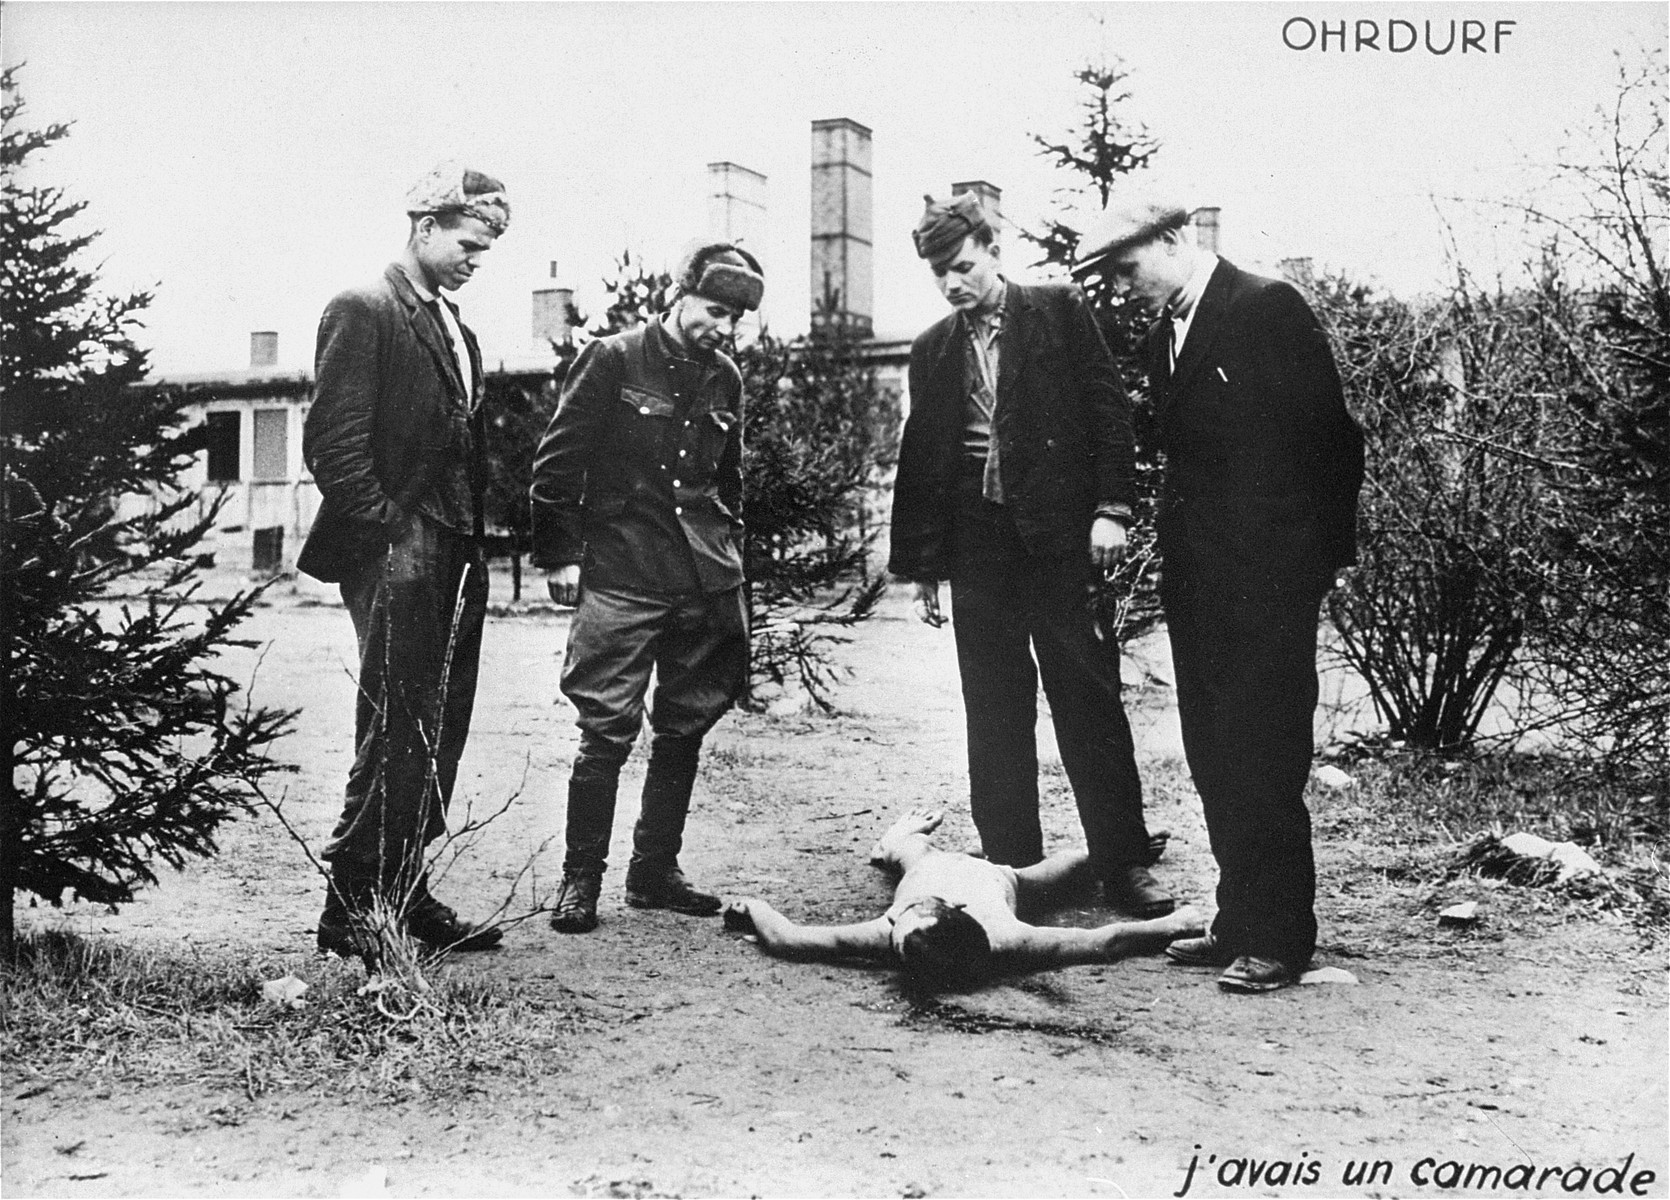 Survivors in Ohrdruf beside the corpse of one of their friends.